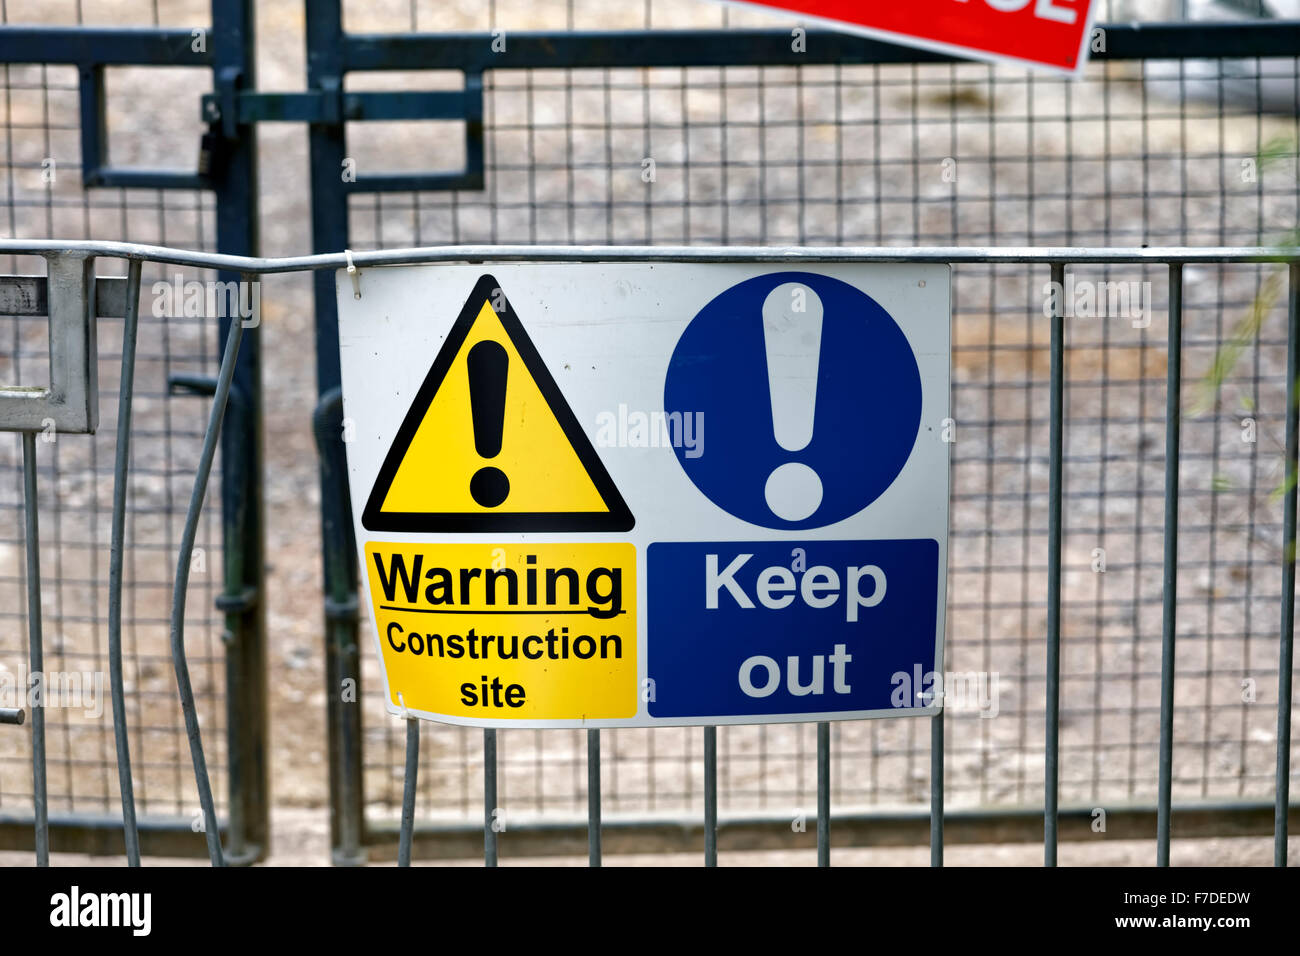 Warning Keep Out Construction Site Sign, Bristol, United Kingdom. - Stock Image